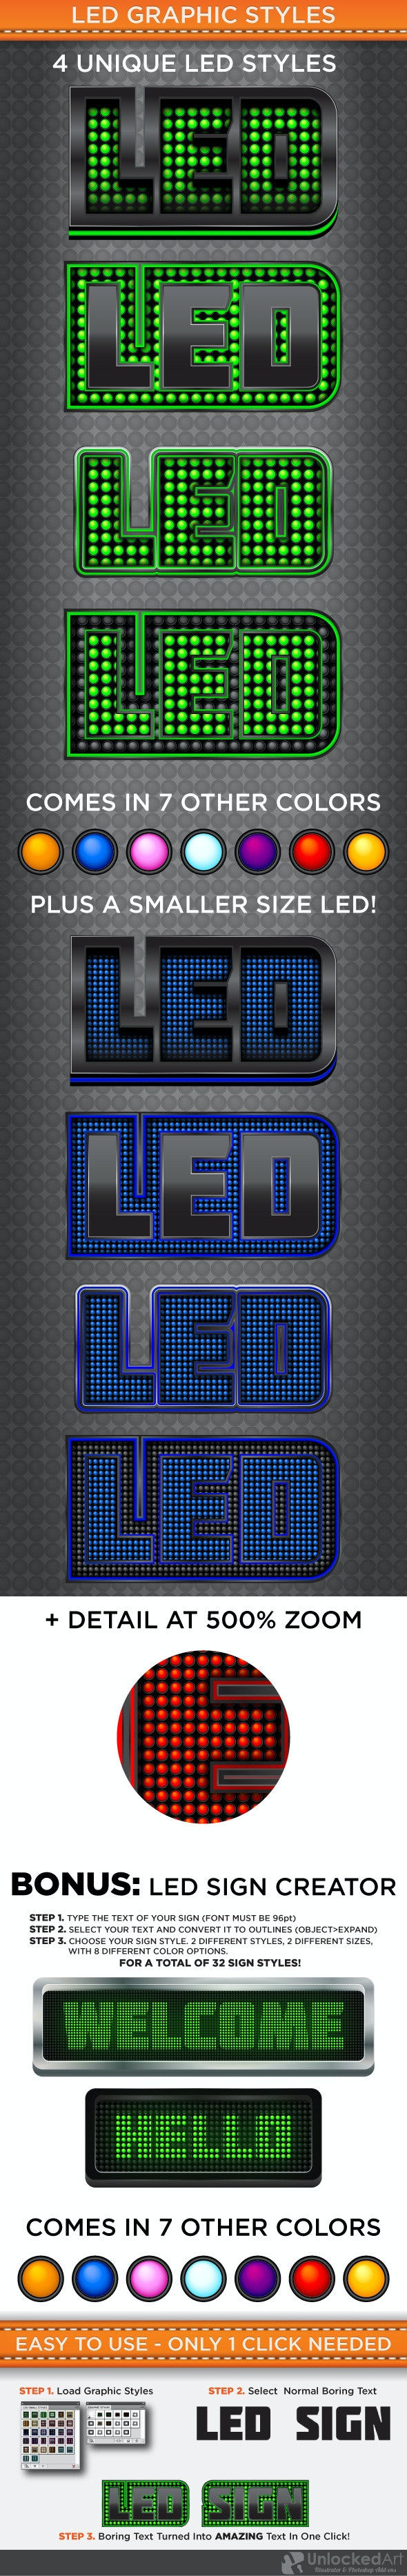 LED Graphic Styles